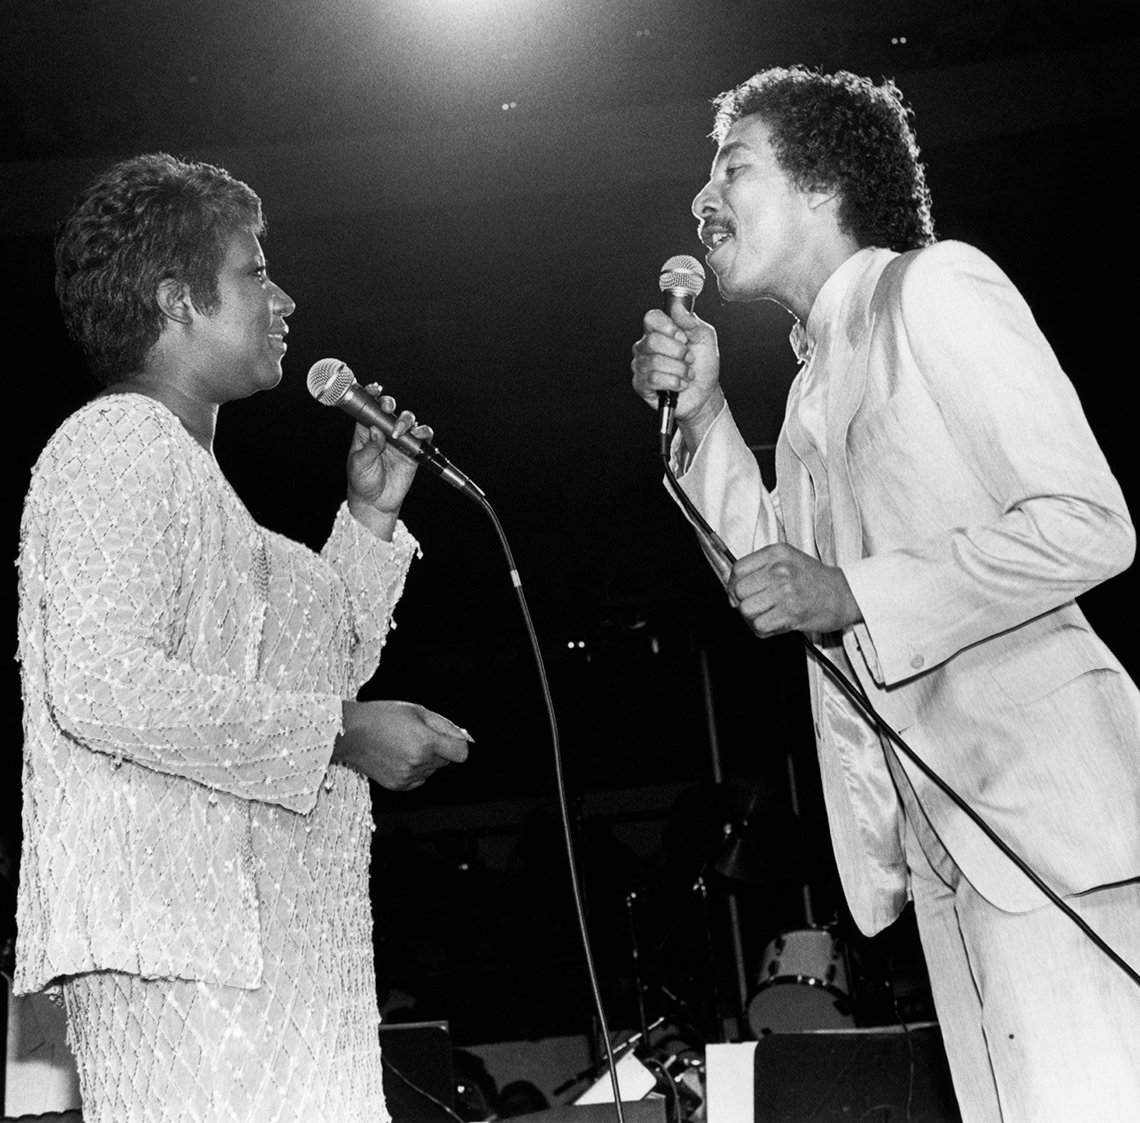 Aretha Franklin signing on stage with Smokey Robinson